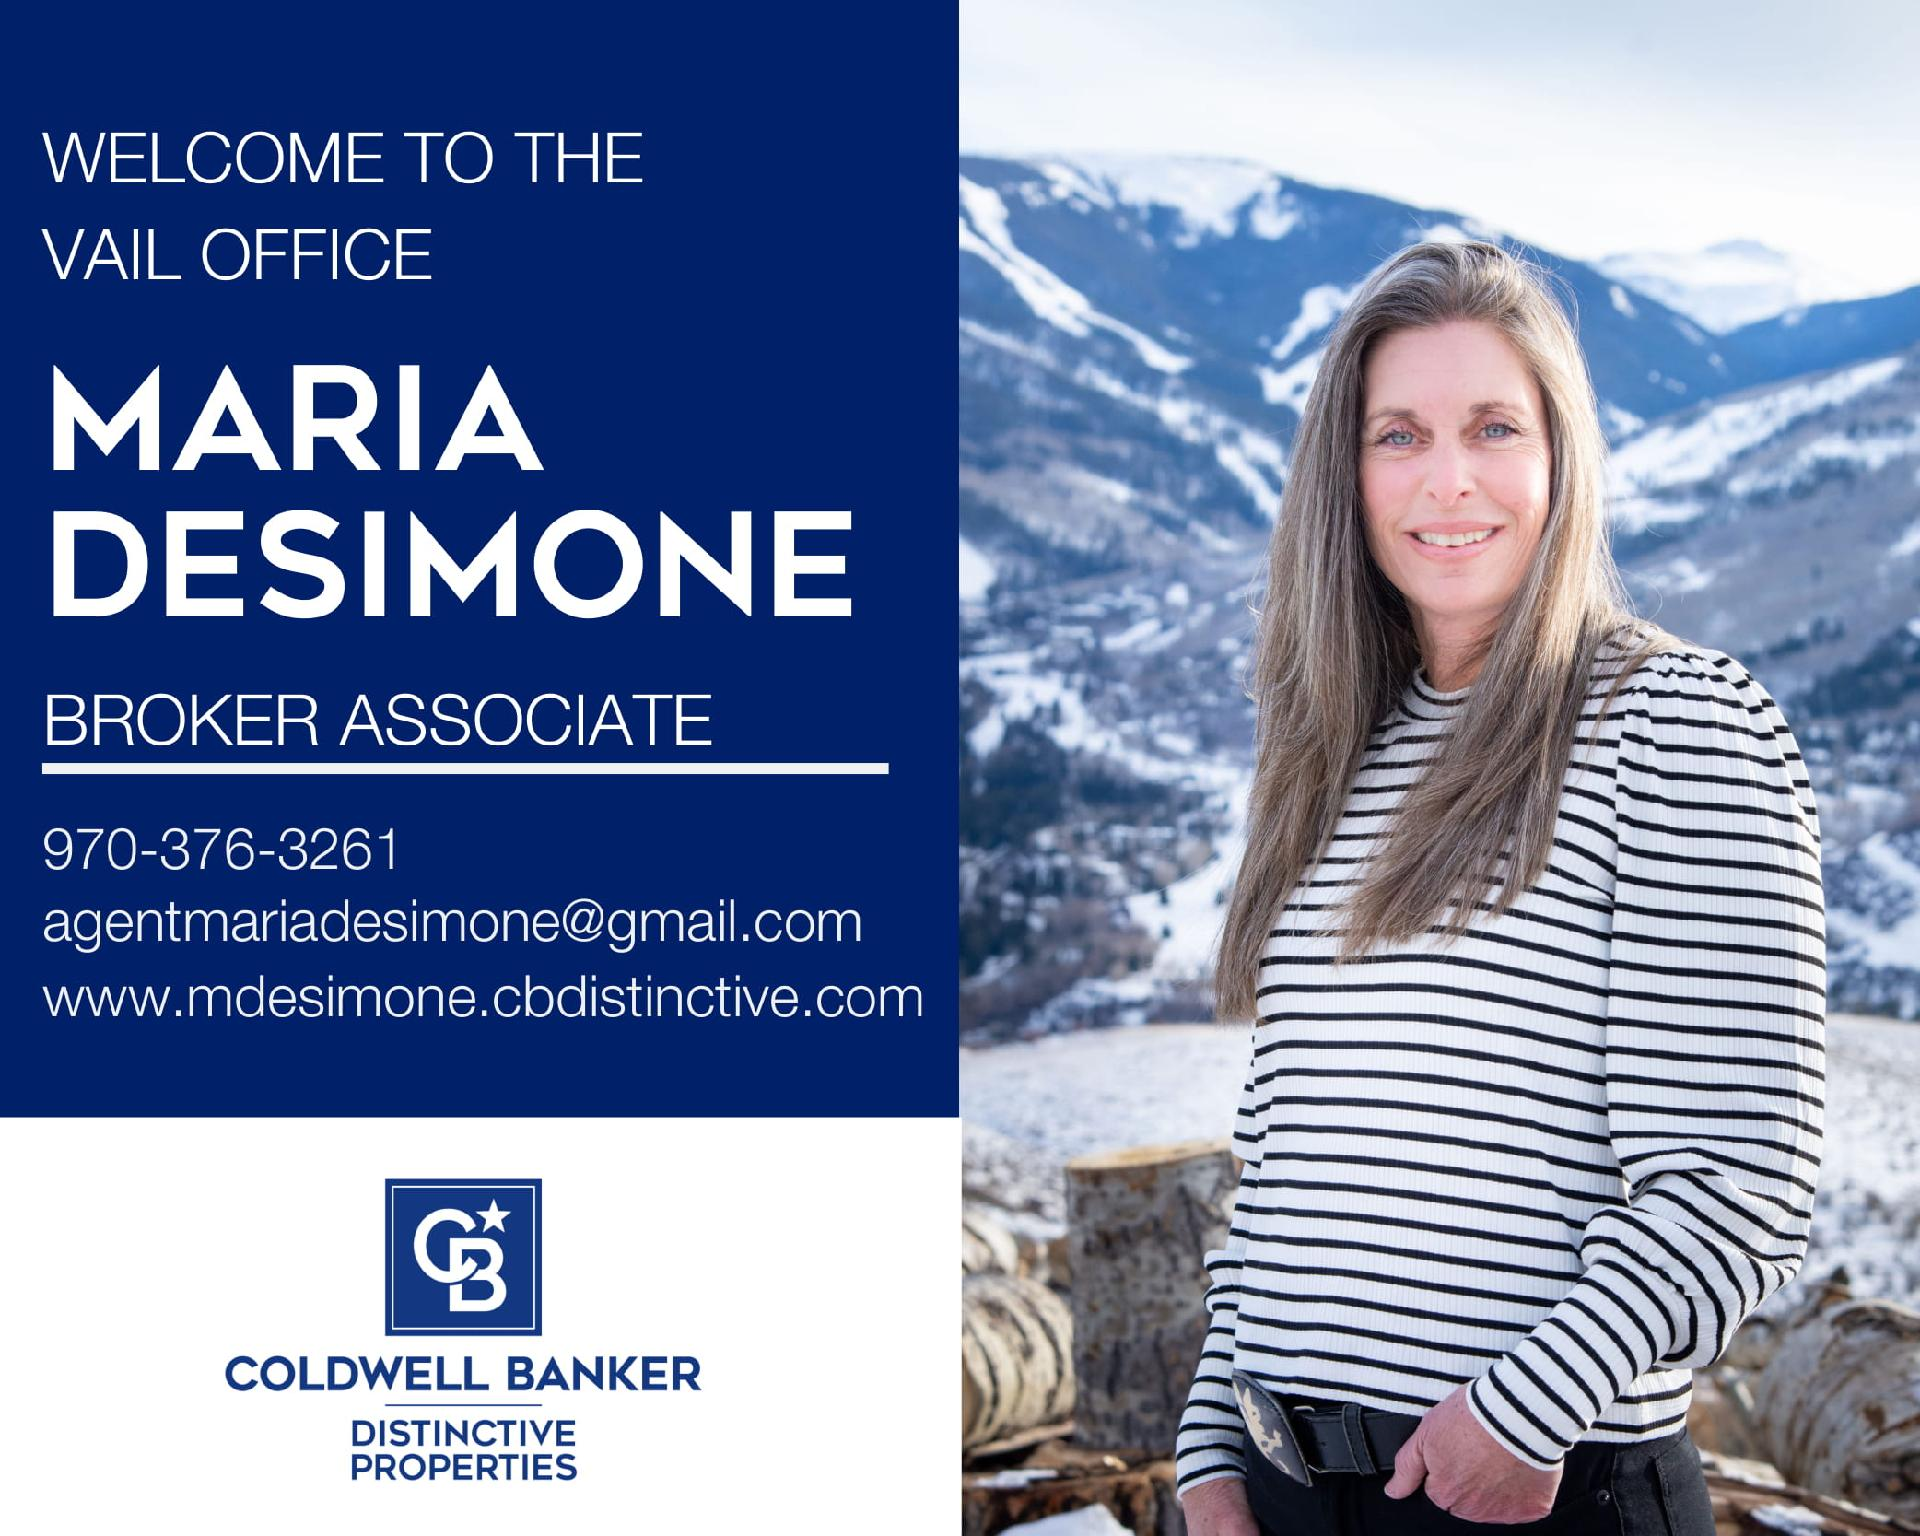 We are excited that Maria DeSimone has joined our Coldwell Banker Family! Main Photo